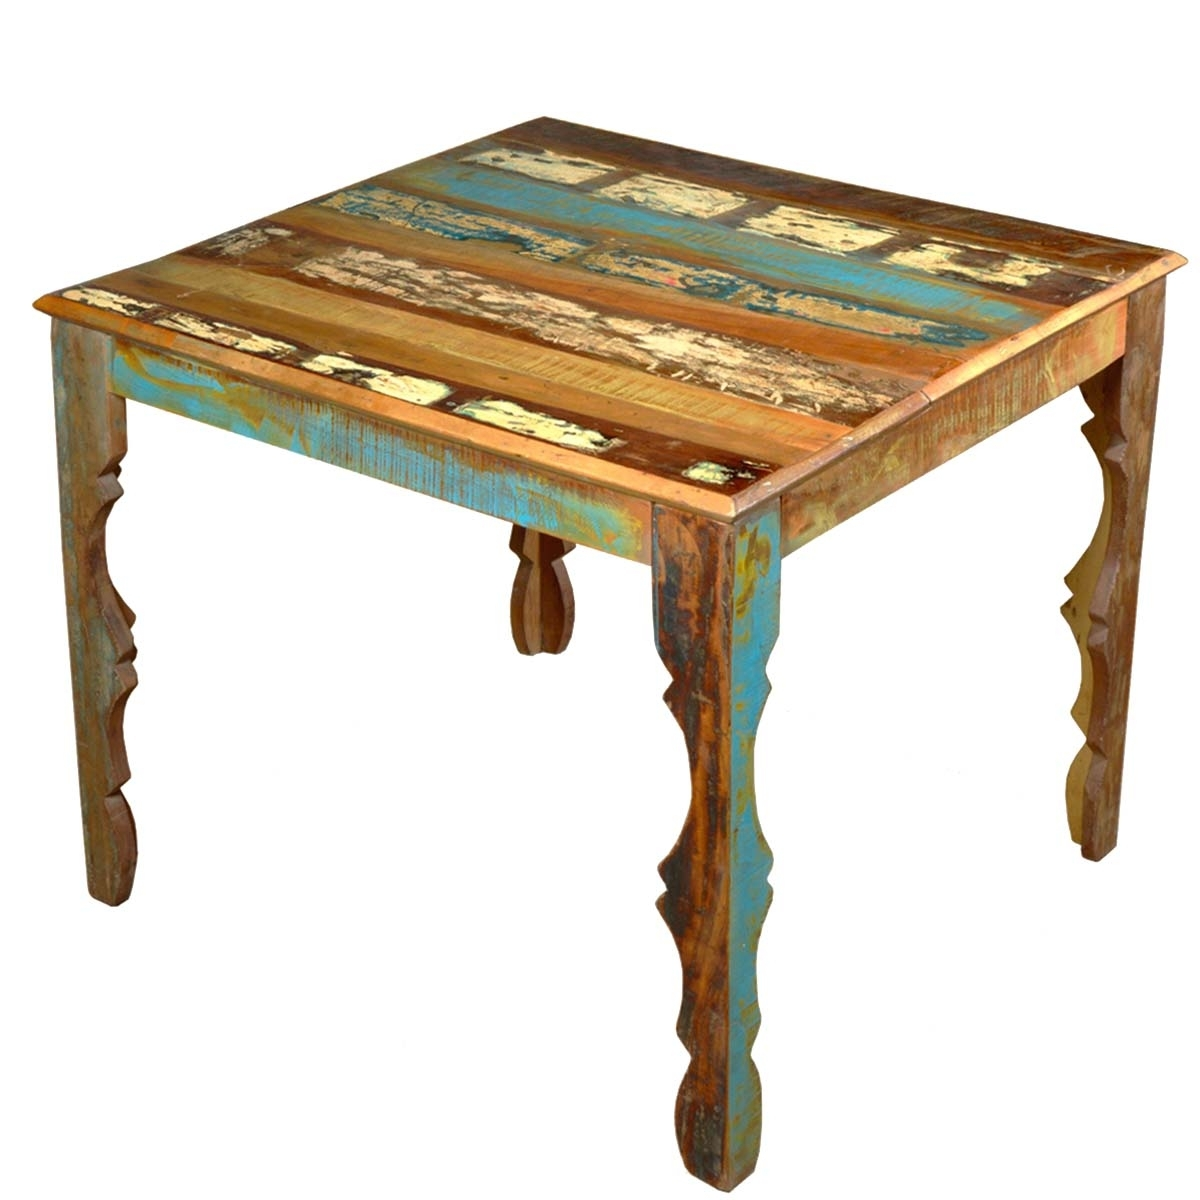 "Cheap Reclaimed Wood Dining Tables Pertaining To Well Known Rustic Reclaimed Wood 36"" Square Dining Table W Decorative Legs (View 7 of 25)"